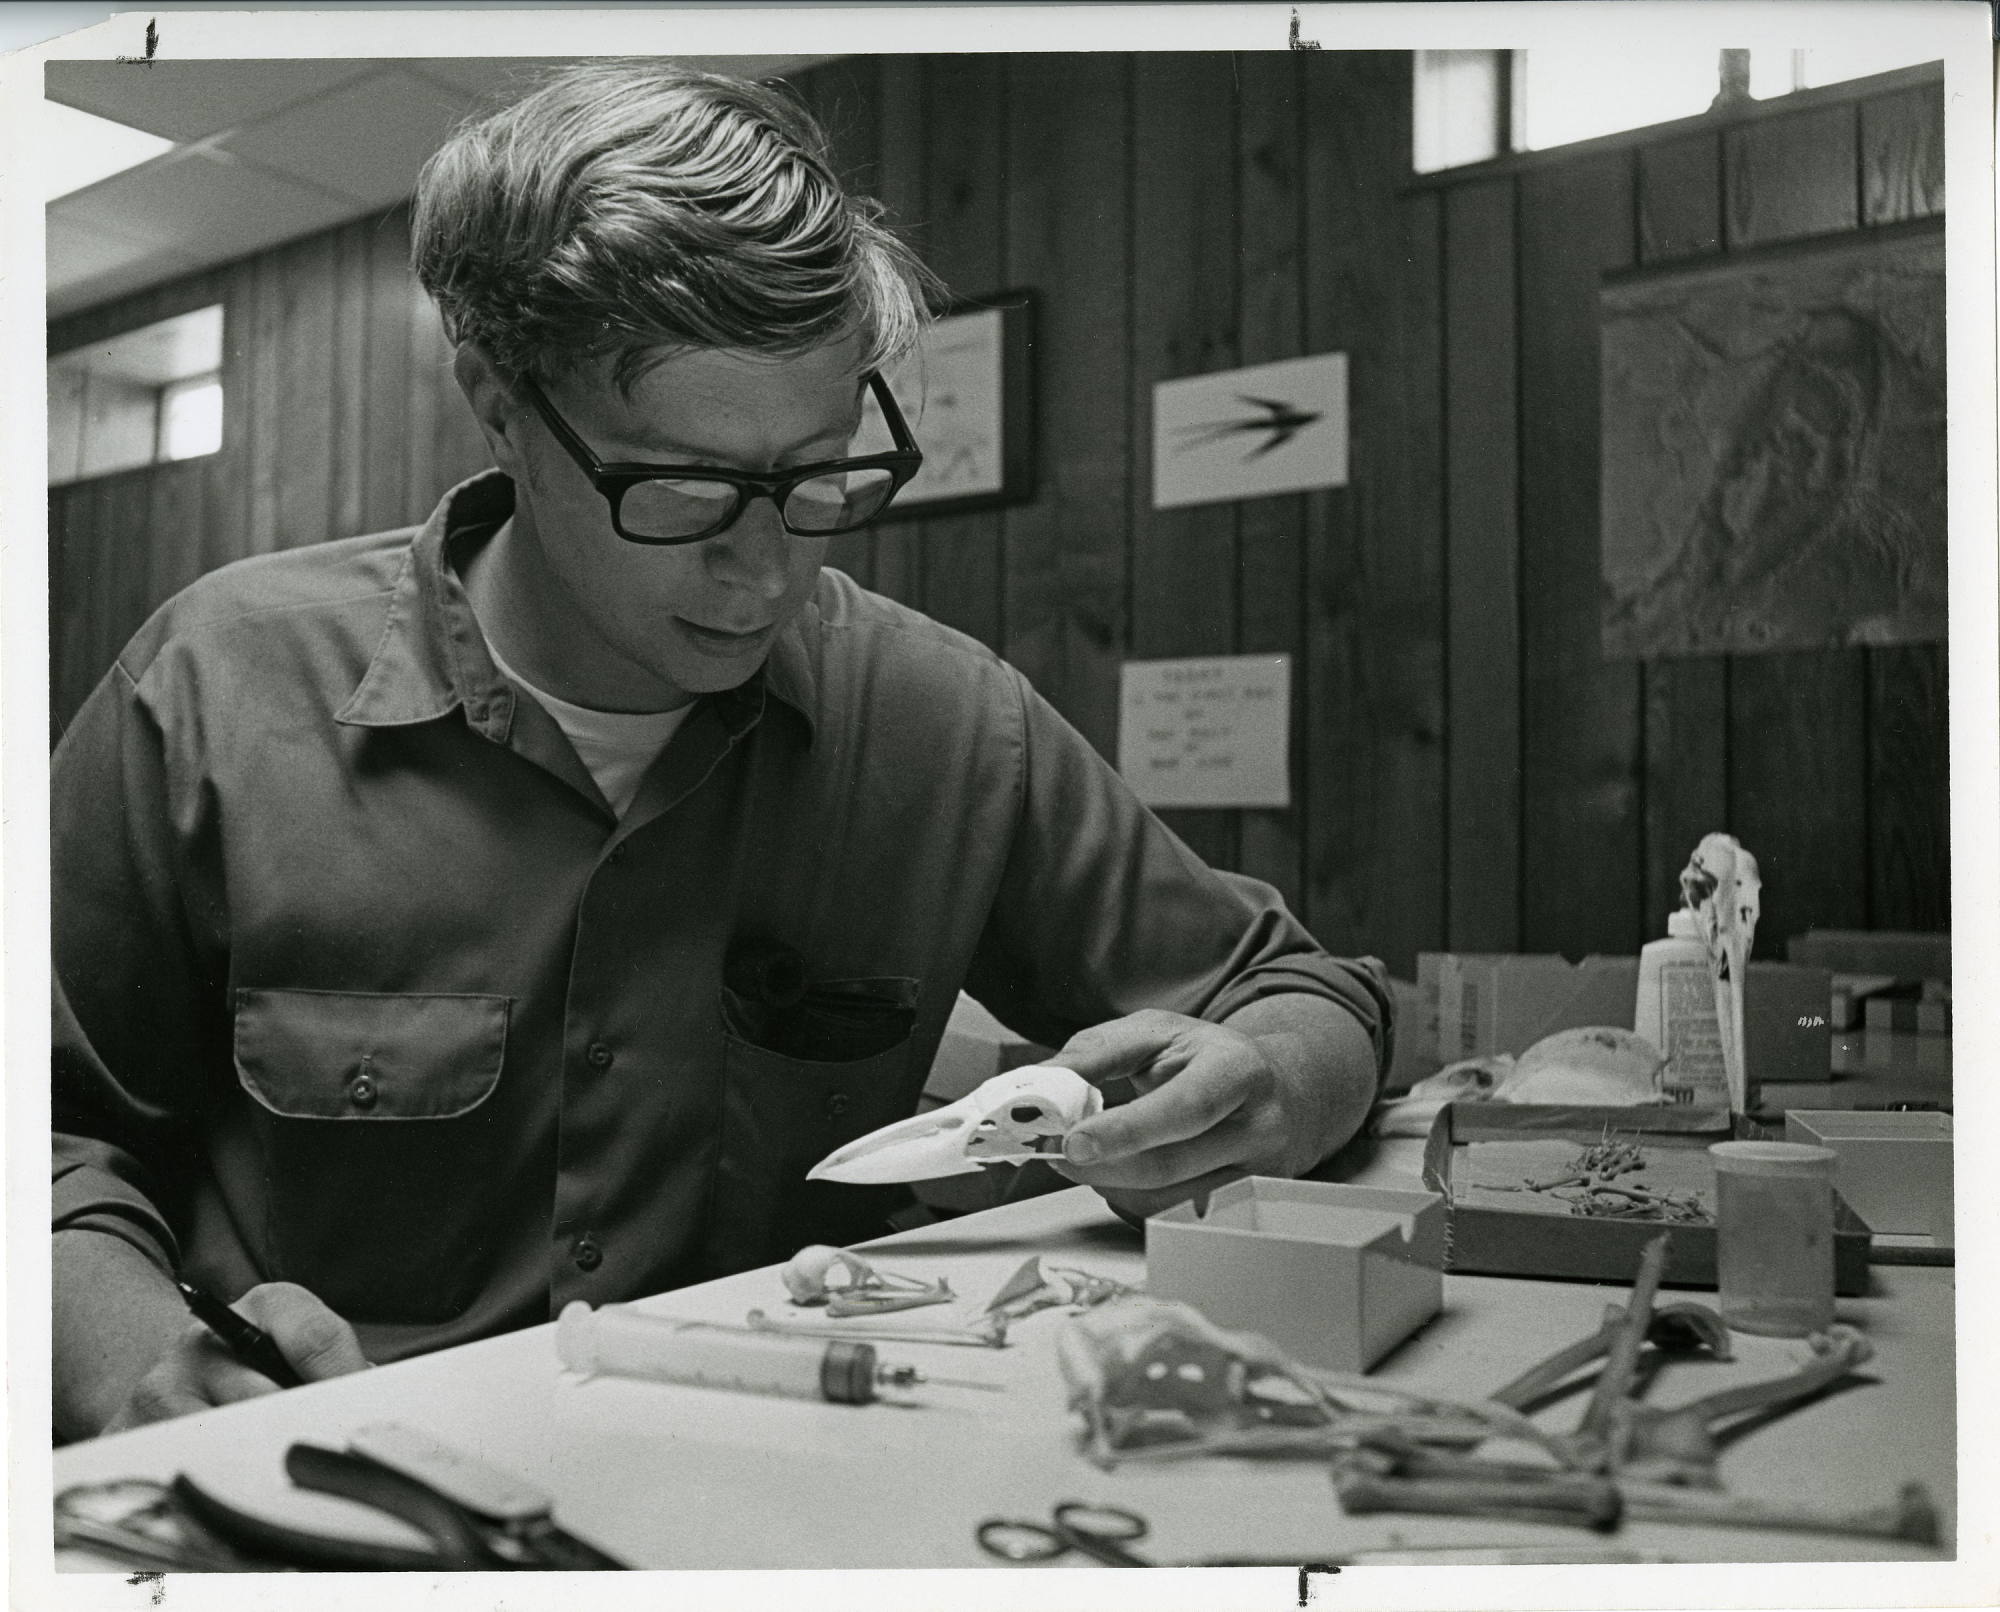 Storrs Olson, ornithologist with the Smithsonian Environmental Research Center, studying a bird skul